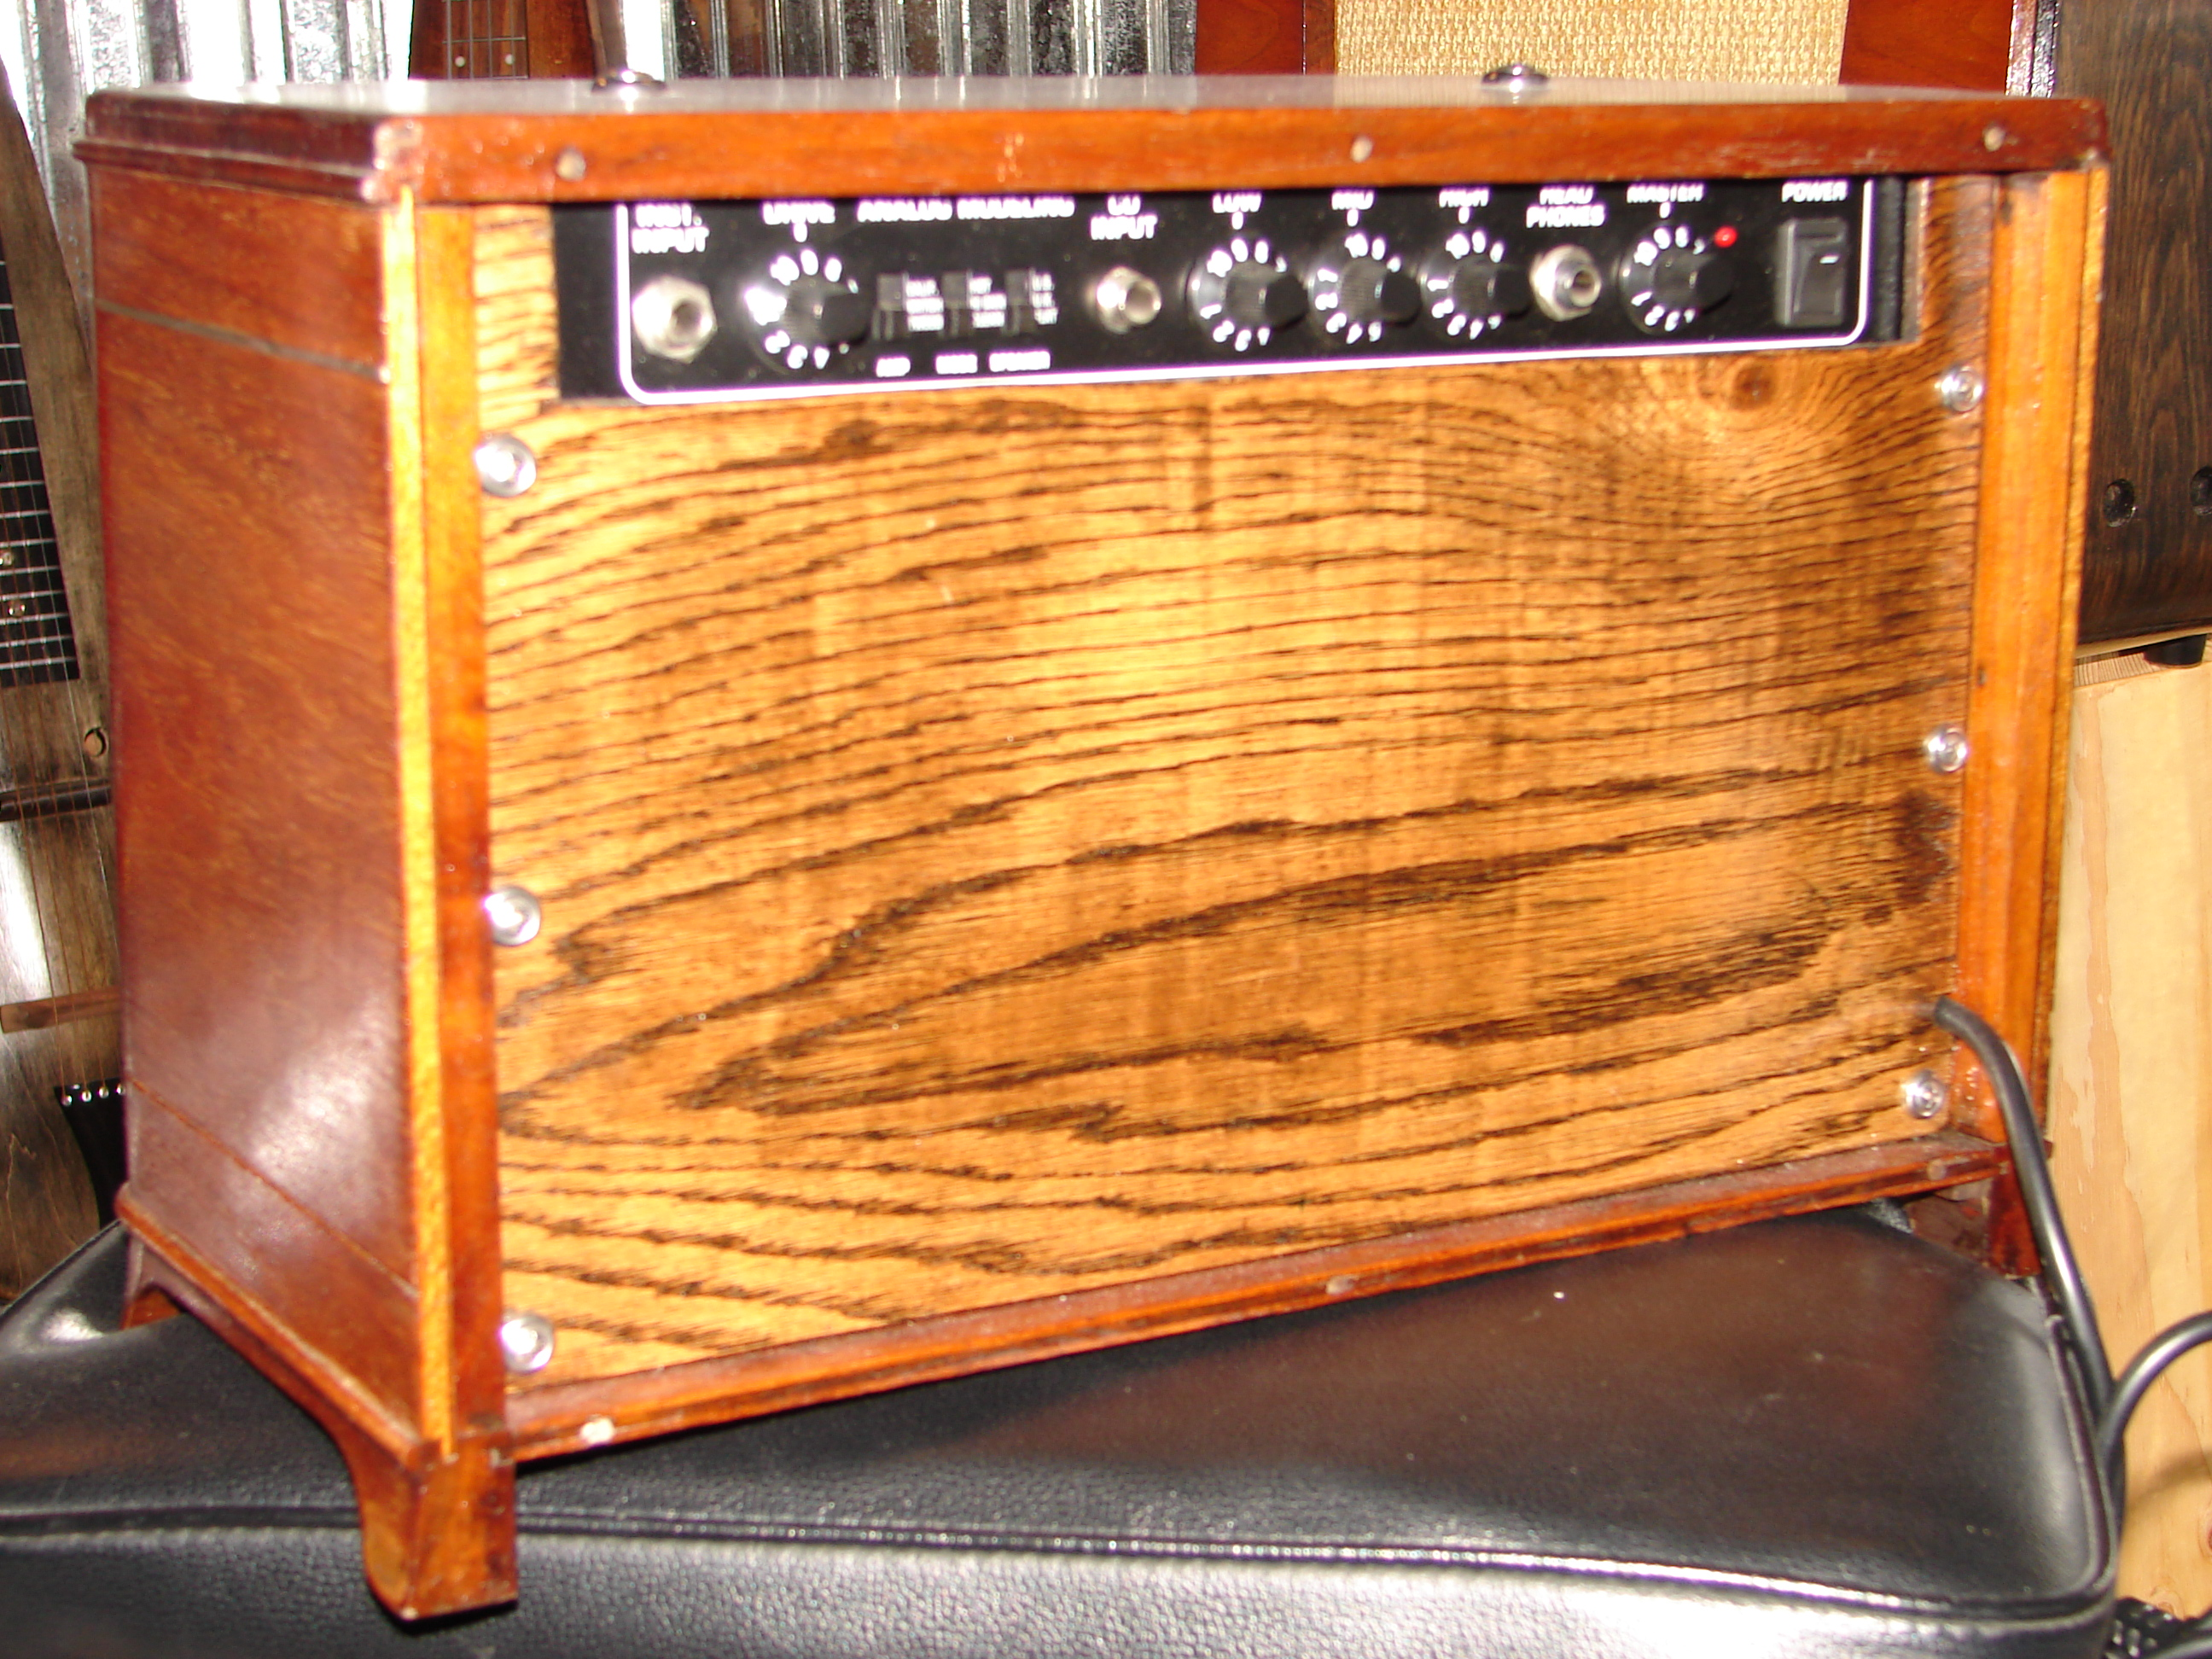 Old radio amp 1 (rear view)